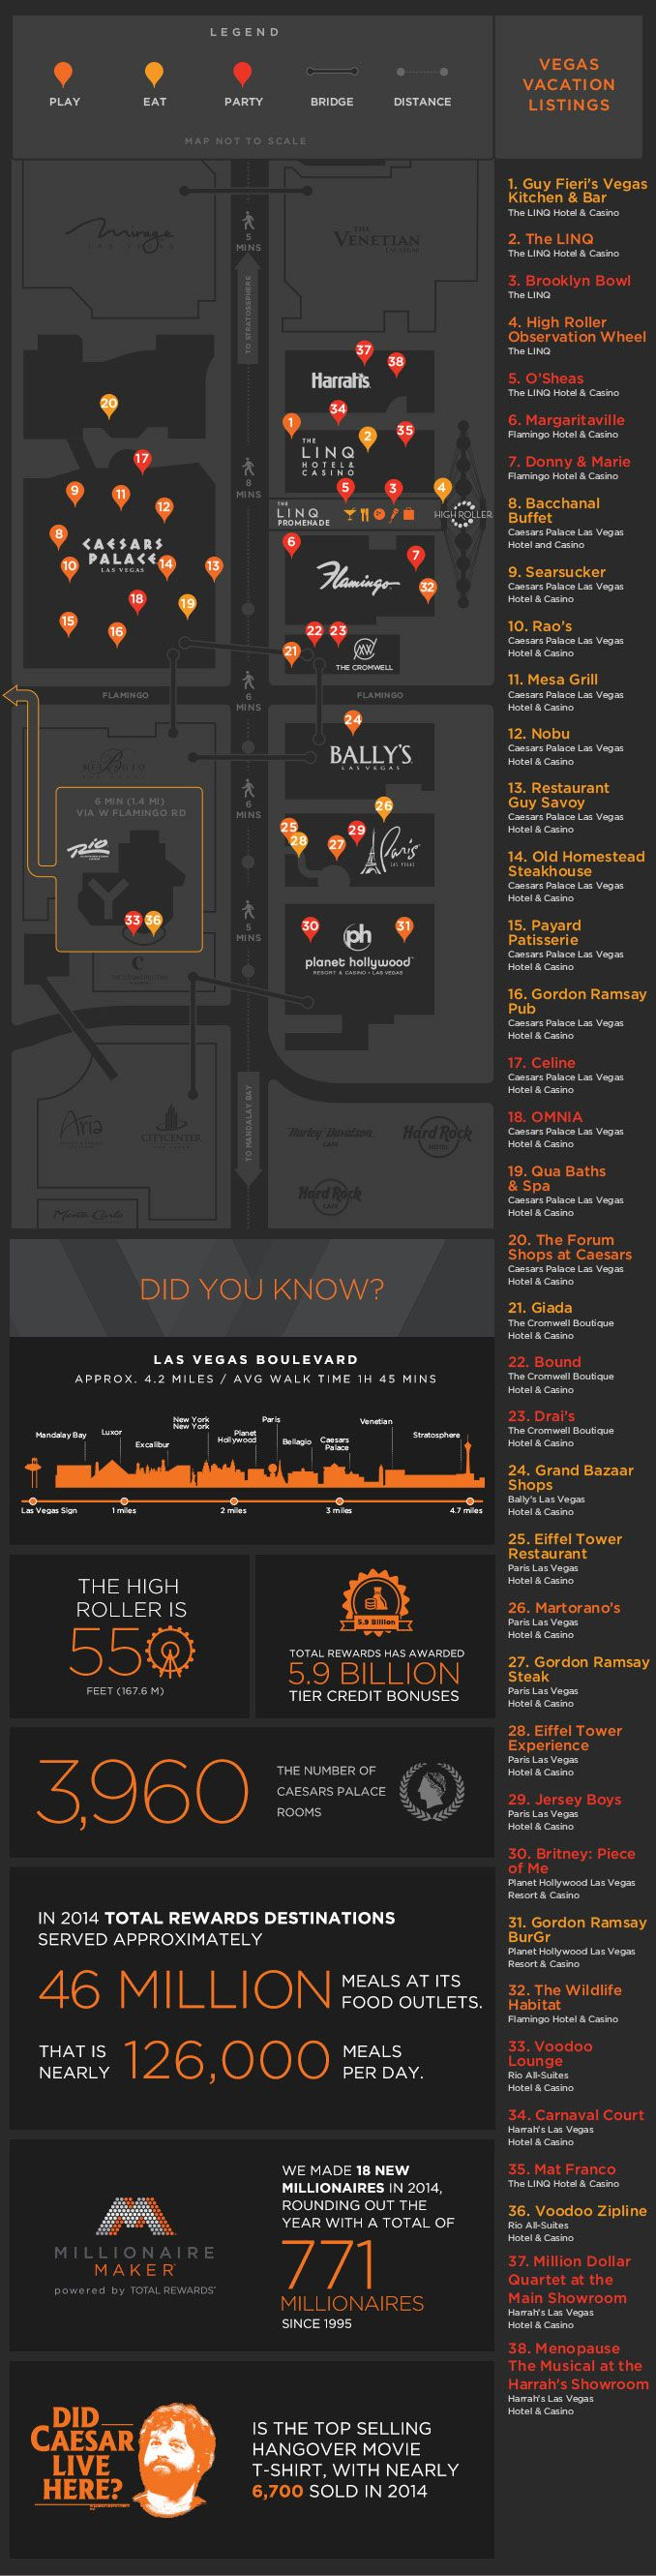 It's only about four miles long, but the Las Vegas Strip is one of the most densely packed thoroughfares in the world when it comes to entertainment, shopp...